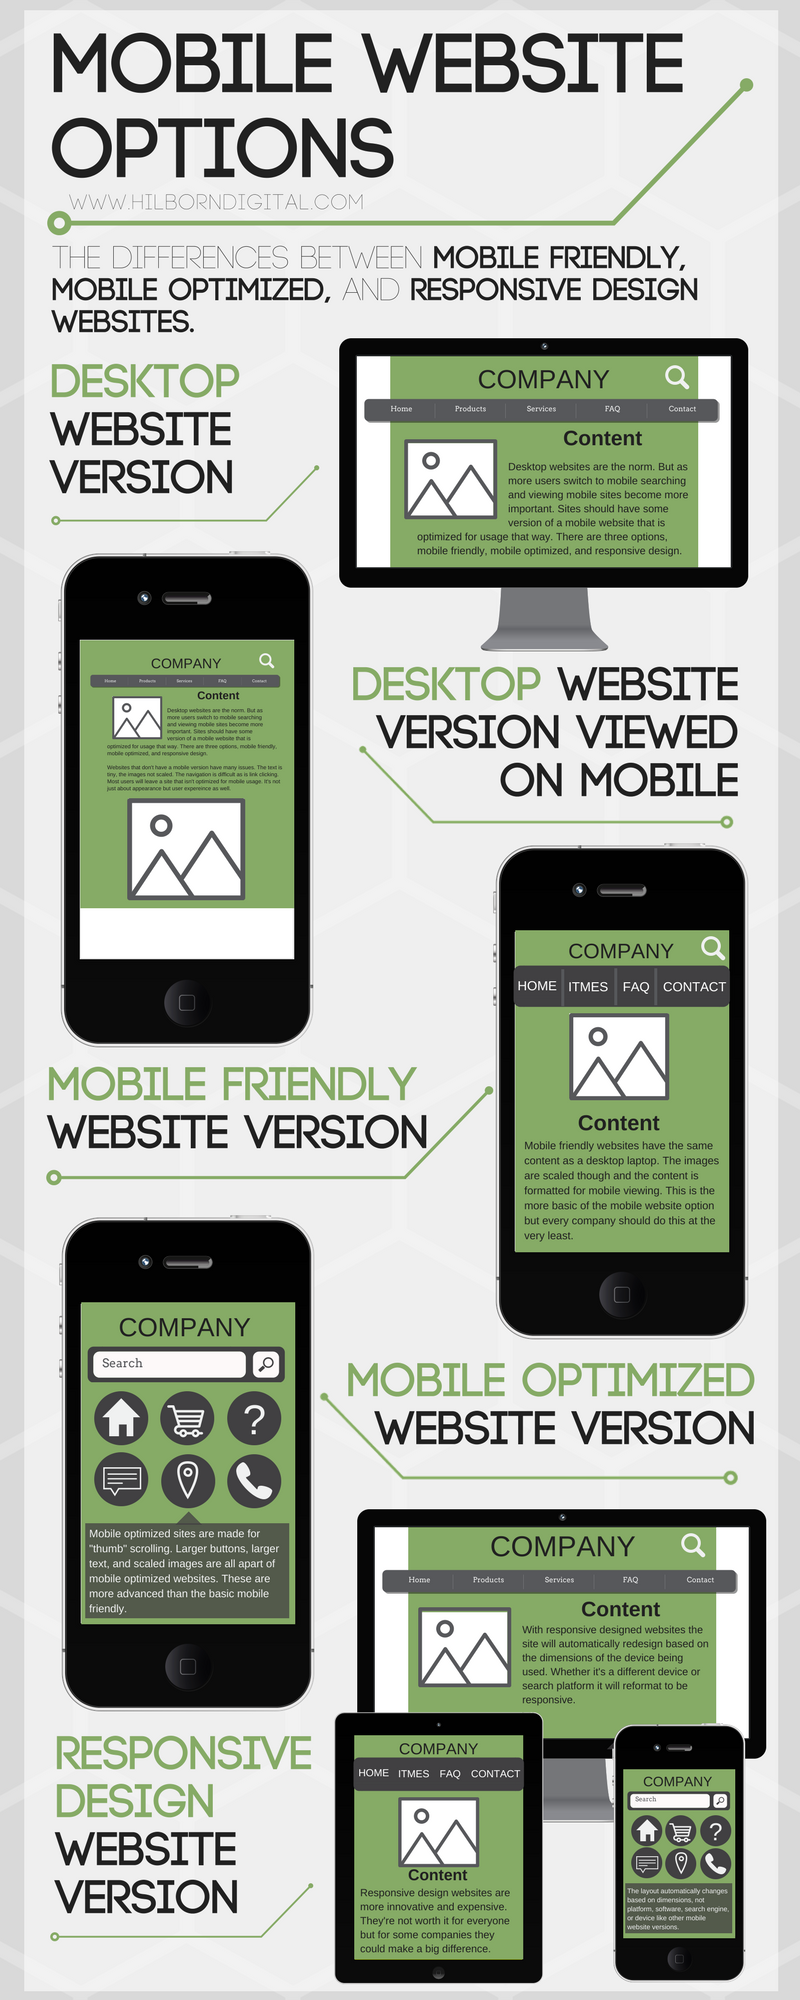 Mobile Friendly Website, Mobile Optimized Website, Responsive Design Website